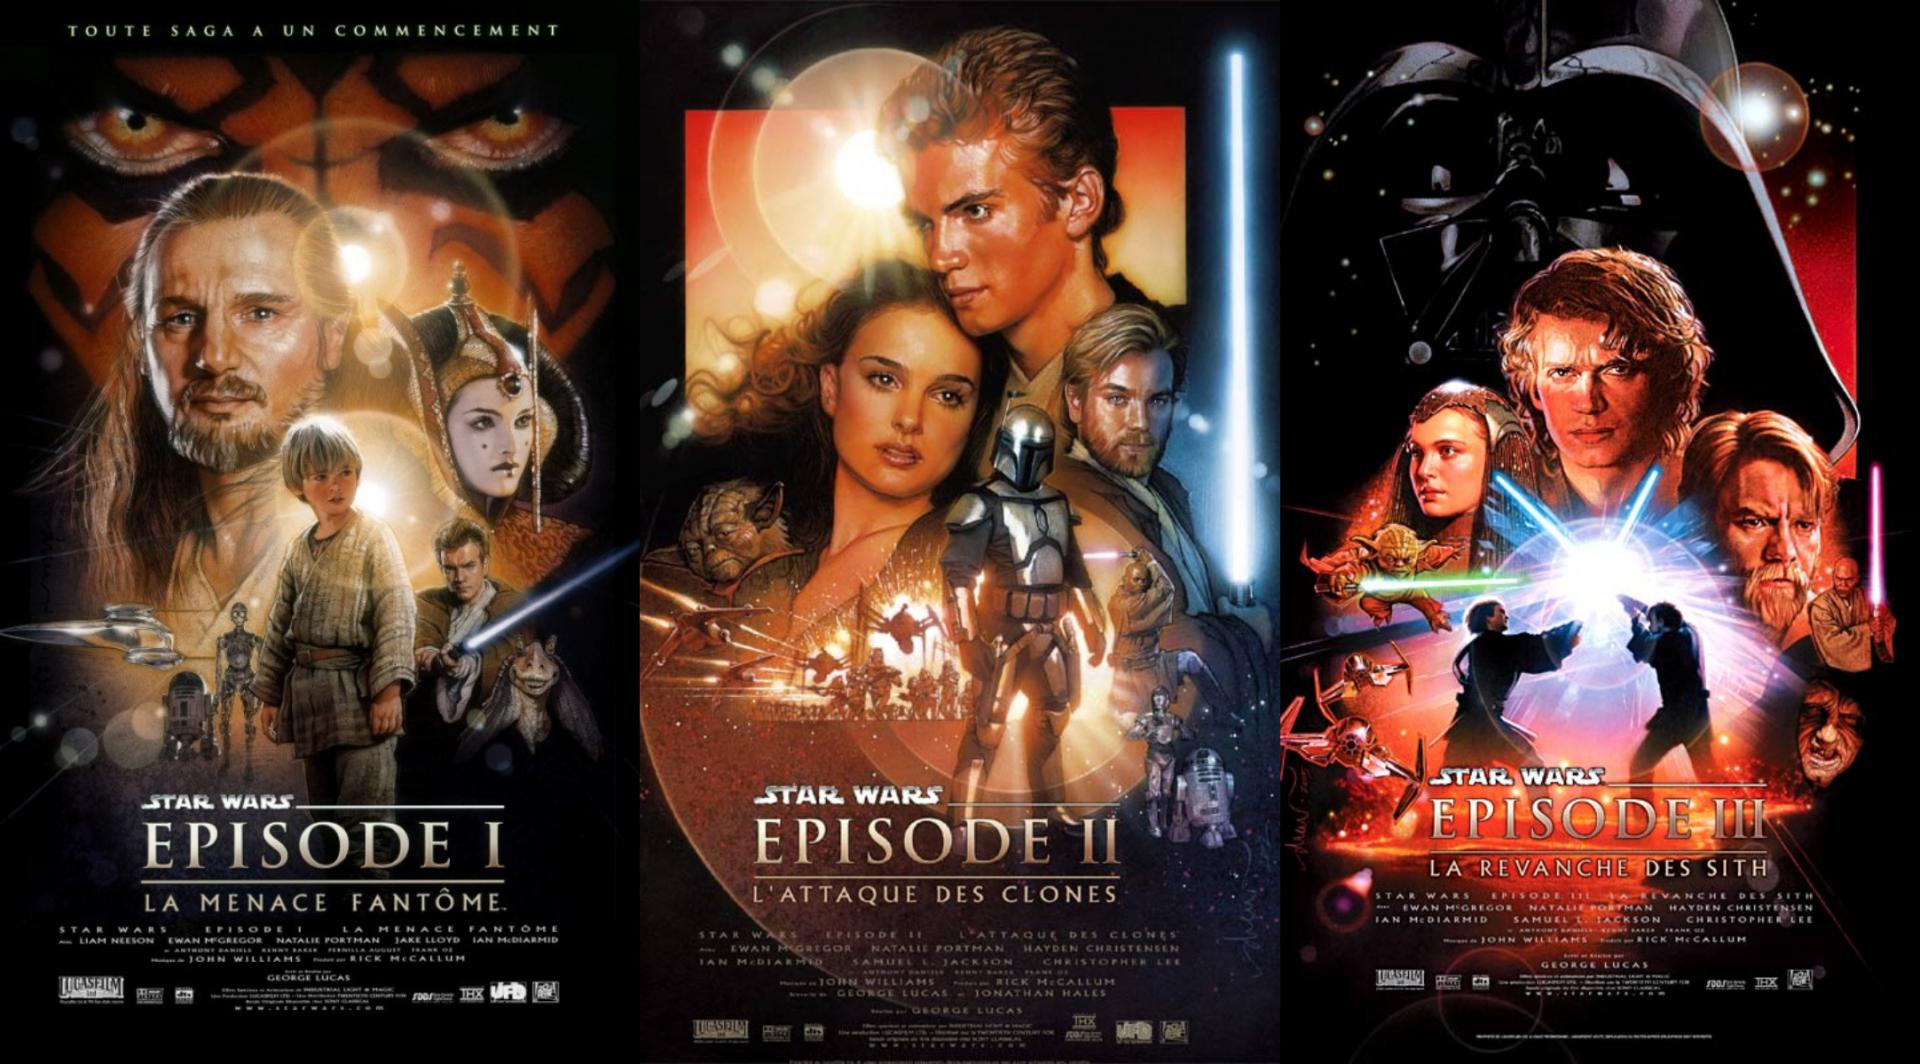 Star wars Disney plus - affiches I, II, III